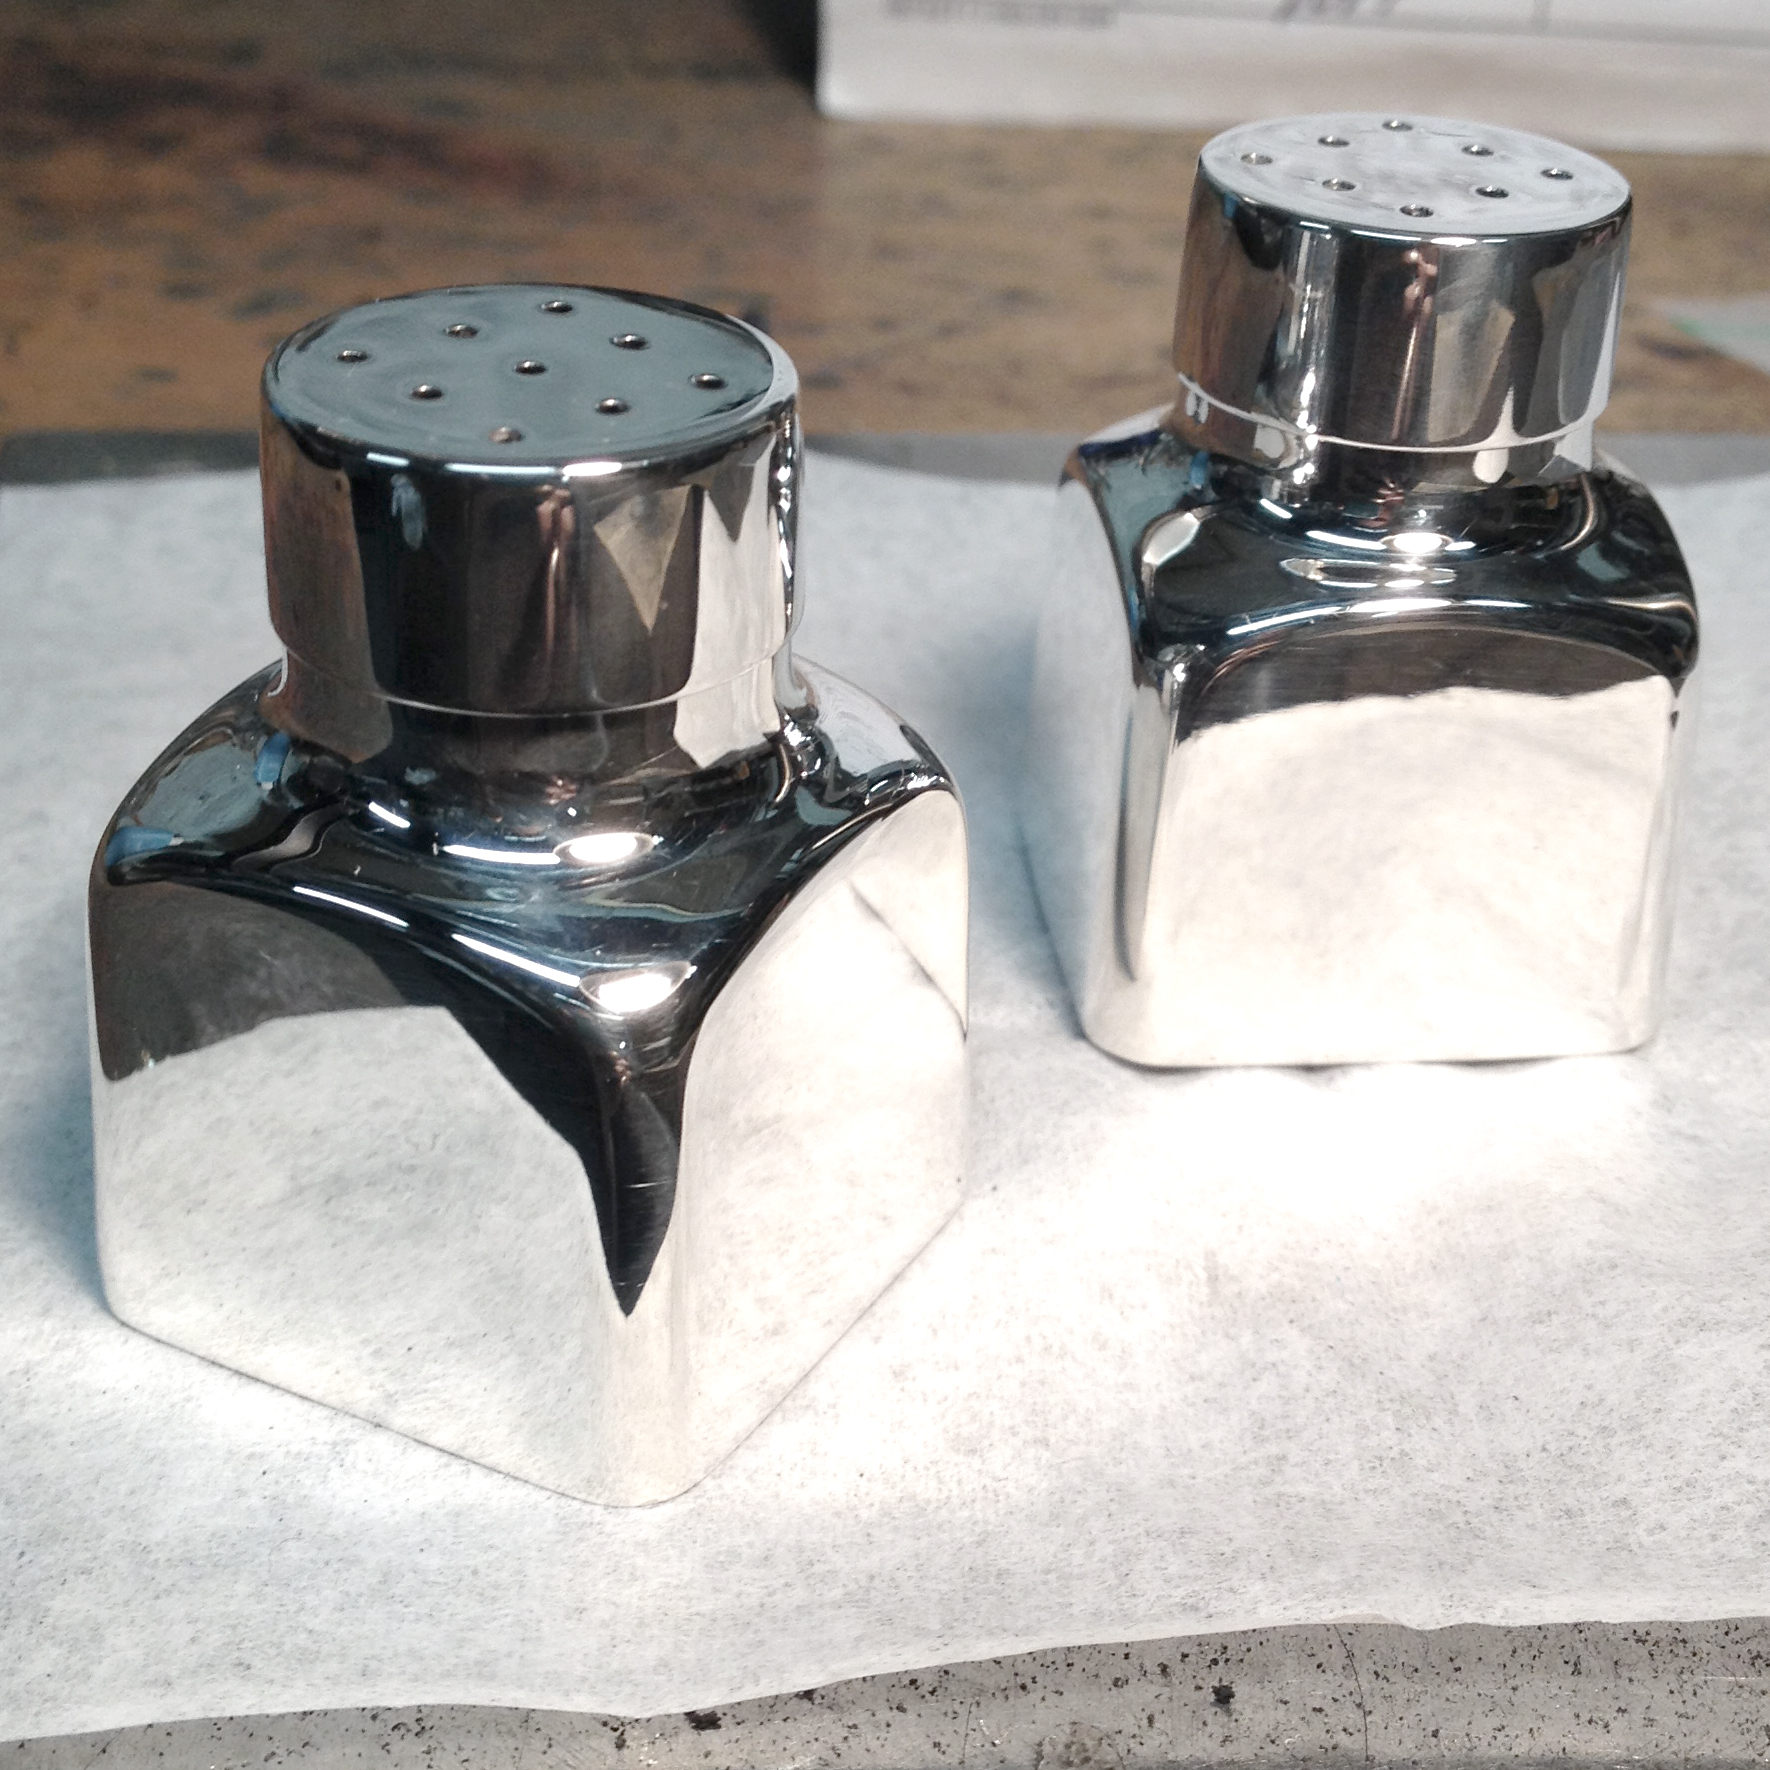 Salt and Pepper Shakers - After